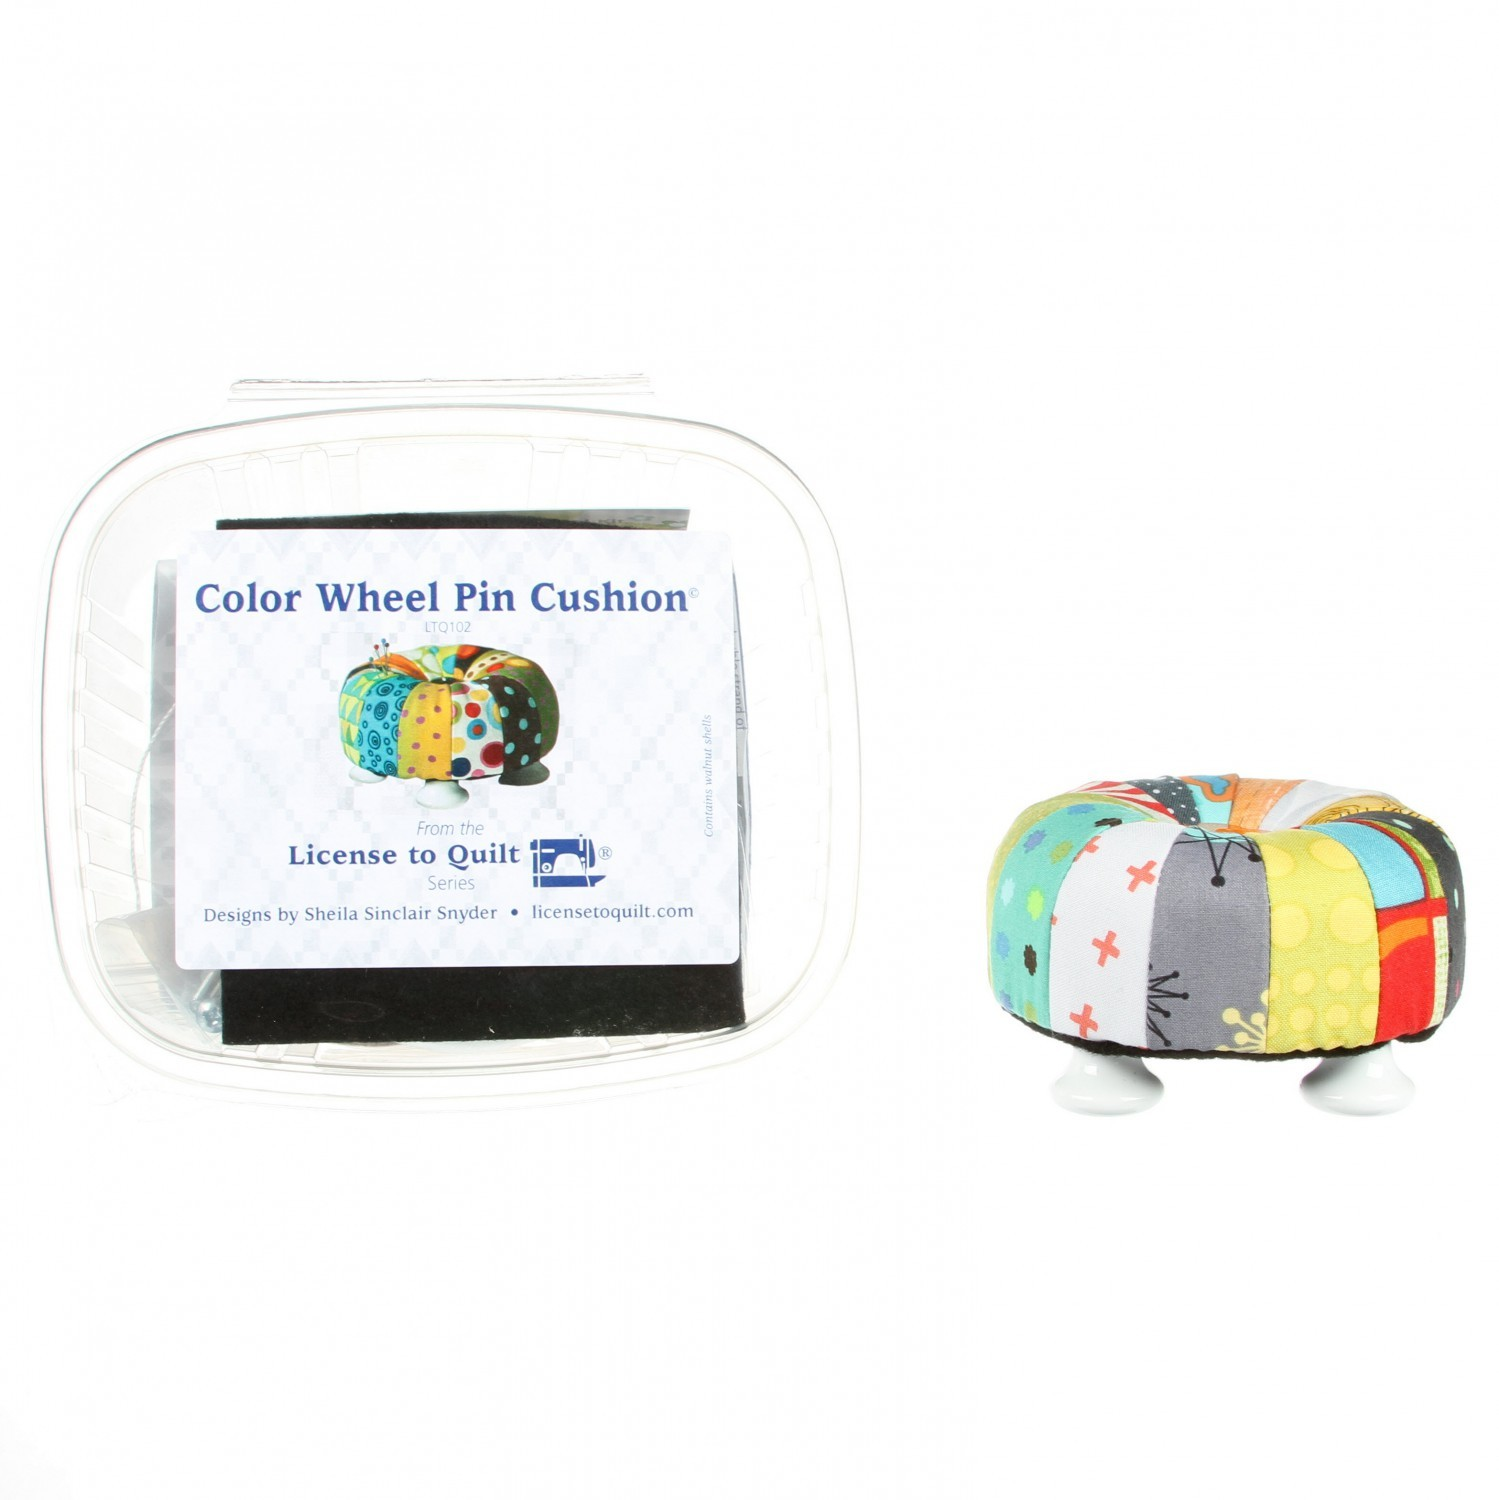 Color Wheel Pin Cushion